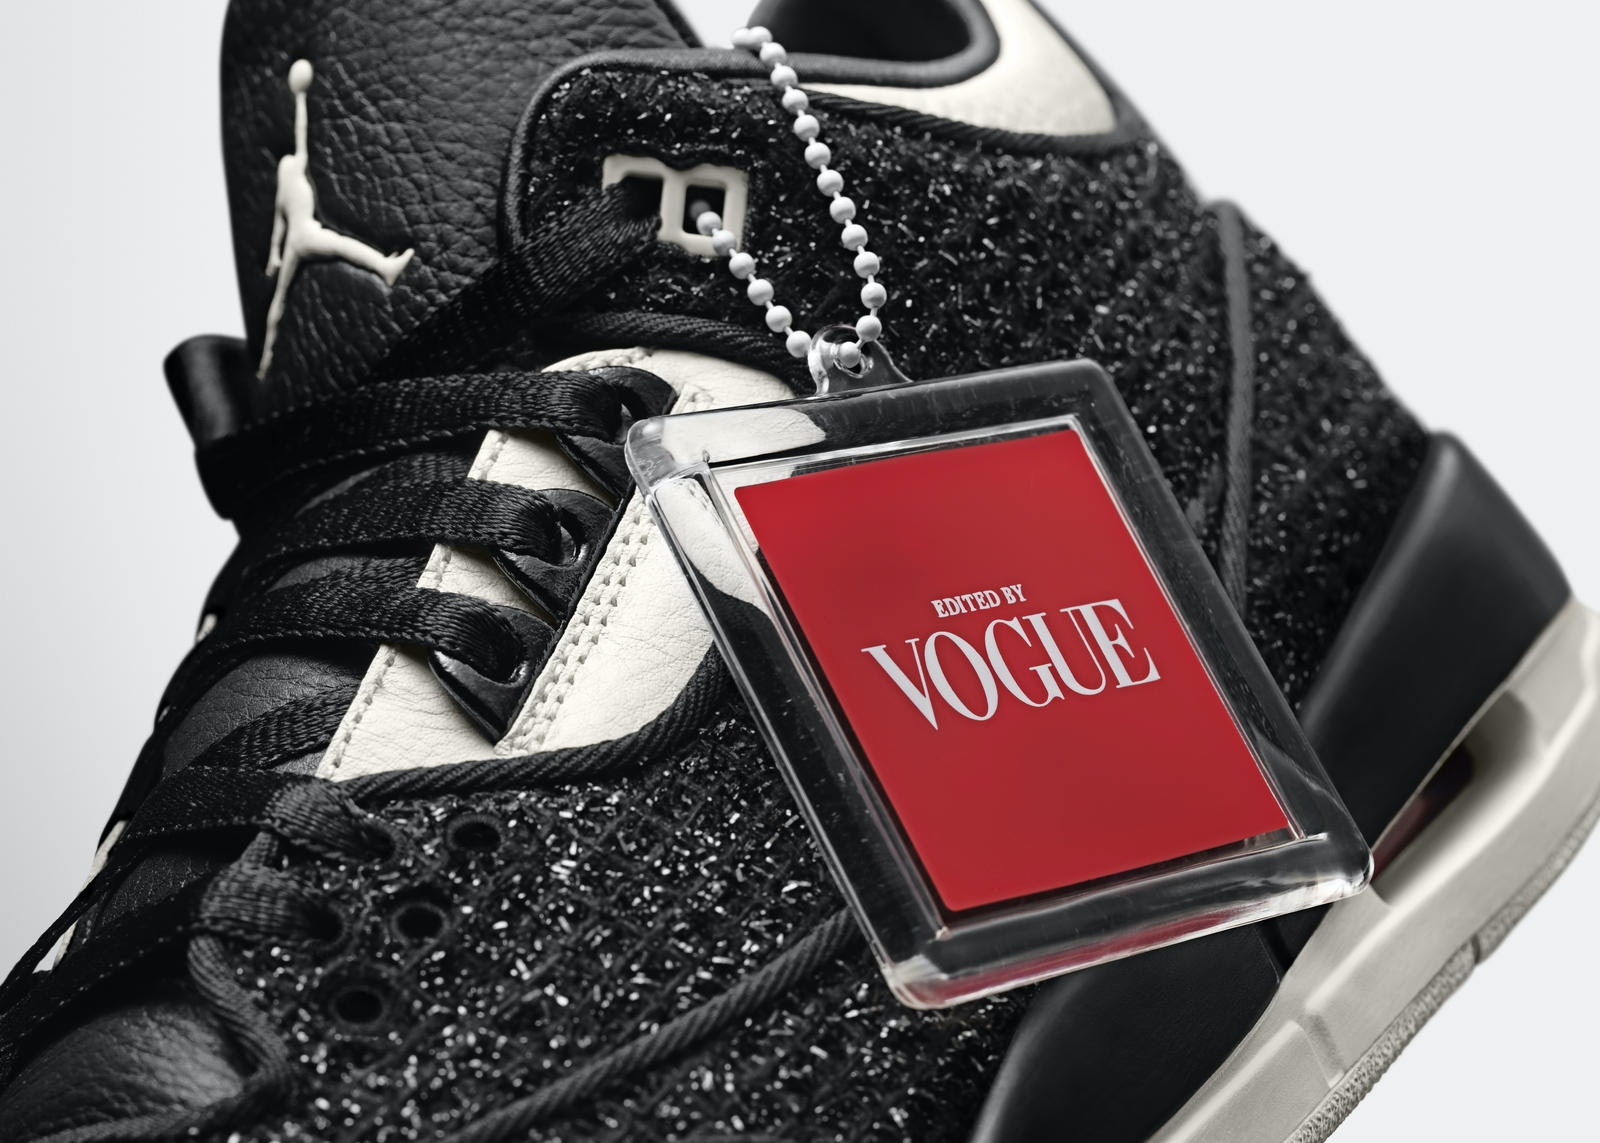 pretty nice 6cb84 ccc04 The  Vogue  x Nike Air Jordan Collaboration Is The Most High Fashion  Sneaker Ever